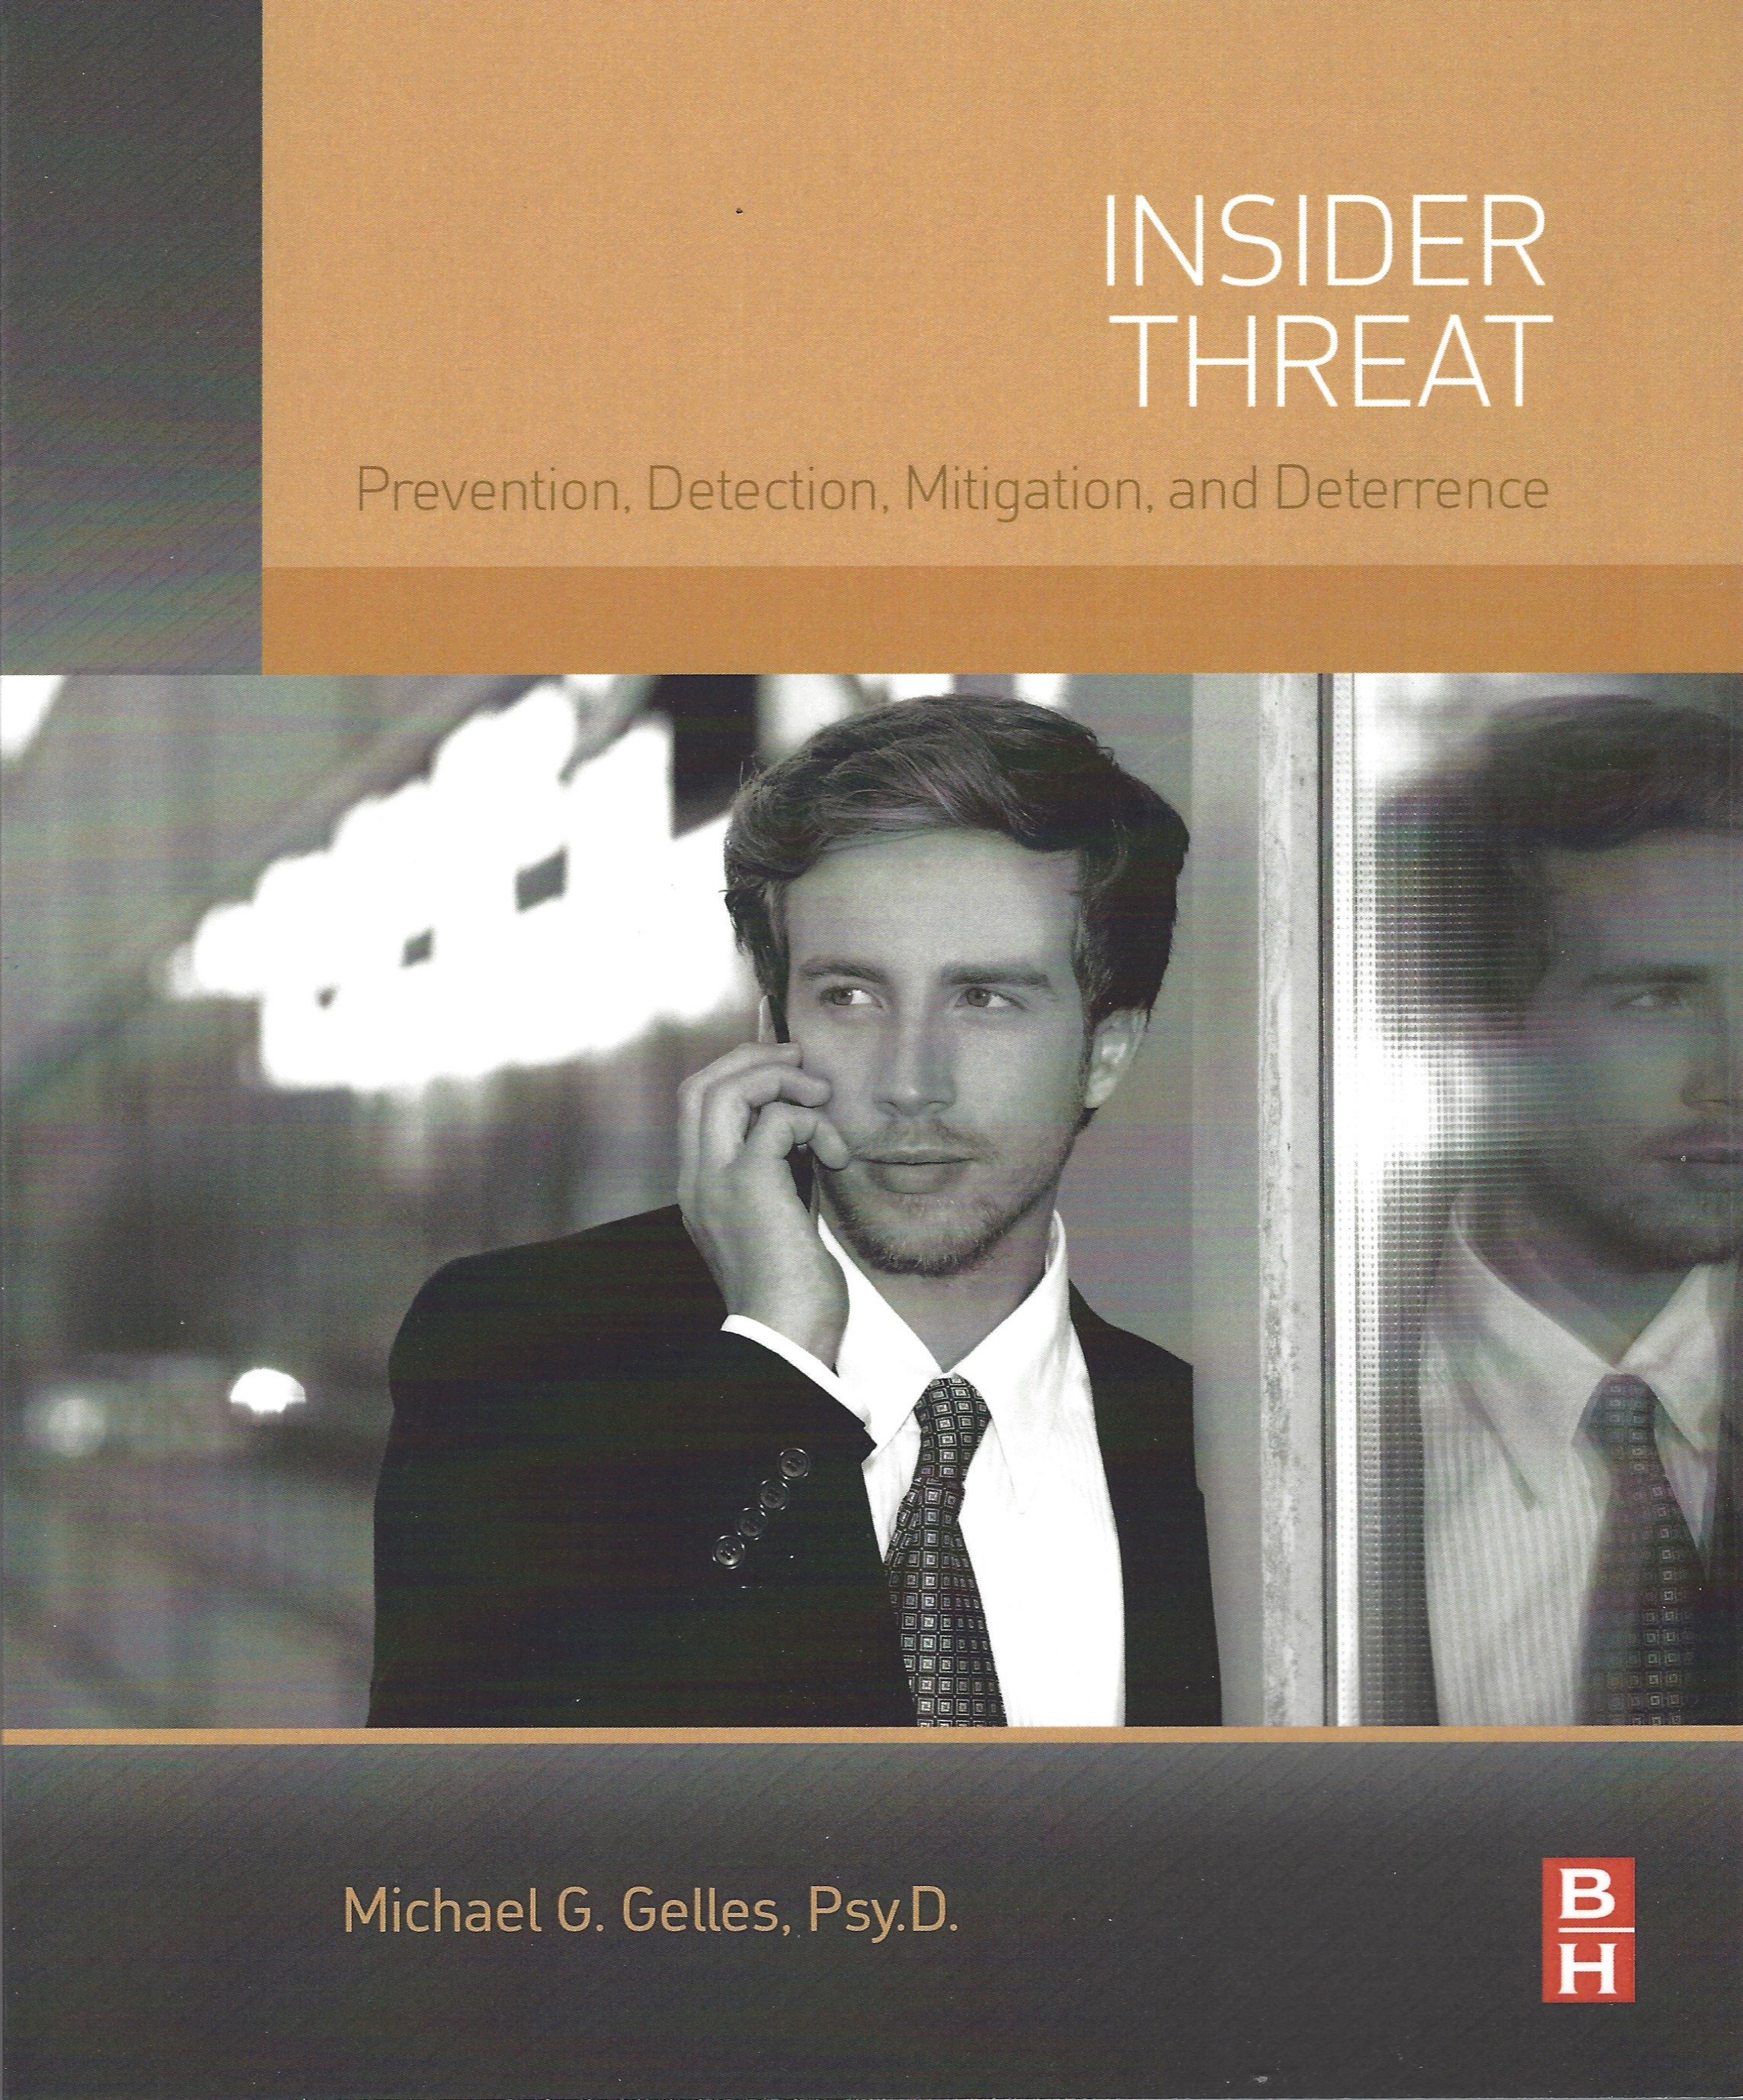 Insider Threat: Prevention, Detection, Mitigation and Deterrence